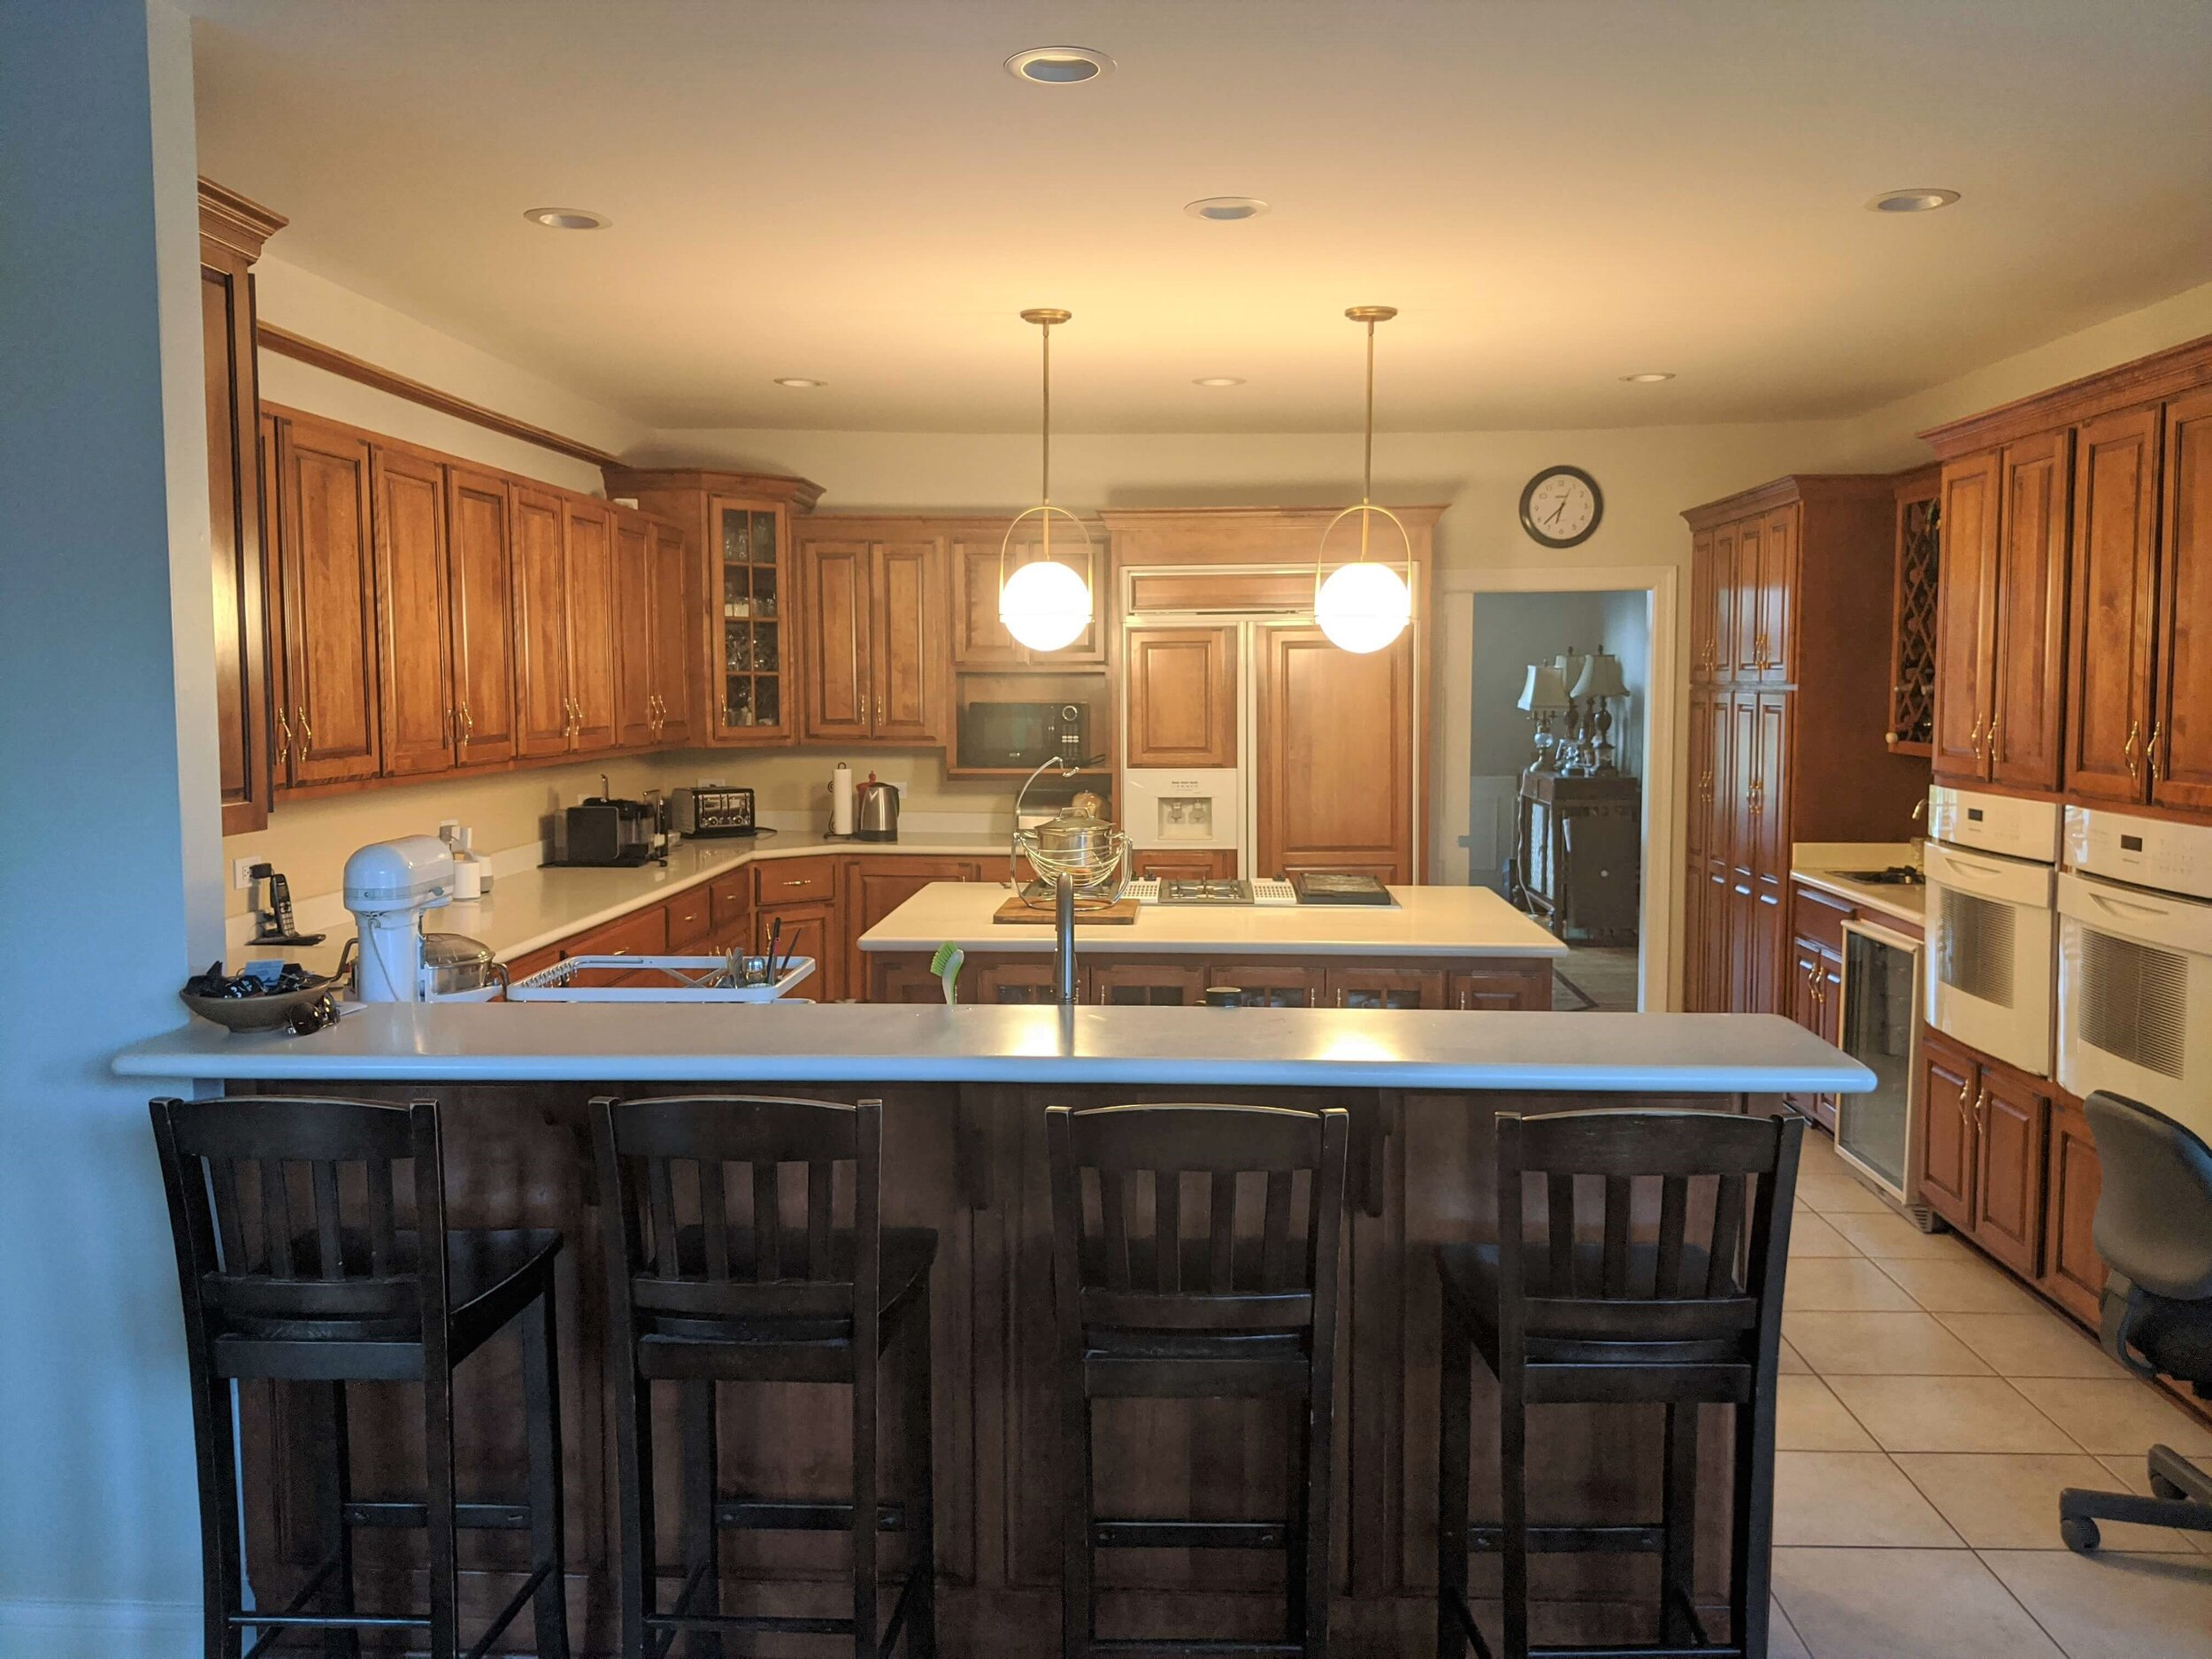 How To Update A Kitchen With Wood Cabinets Without Painting Them Designed